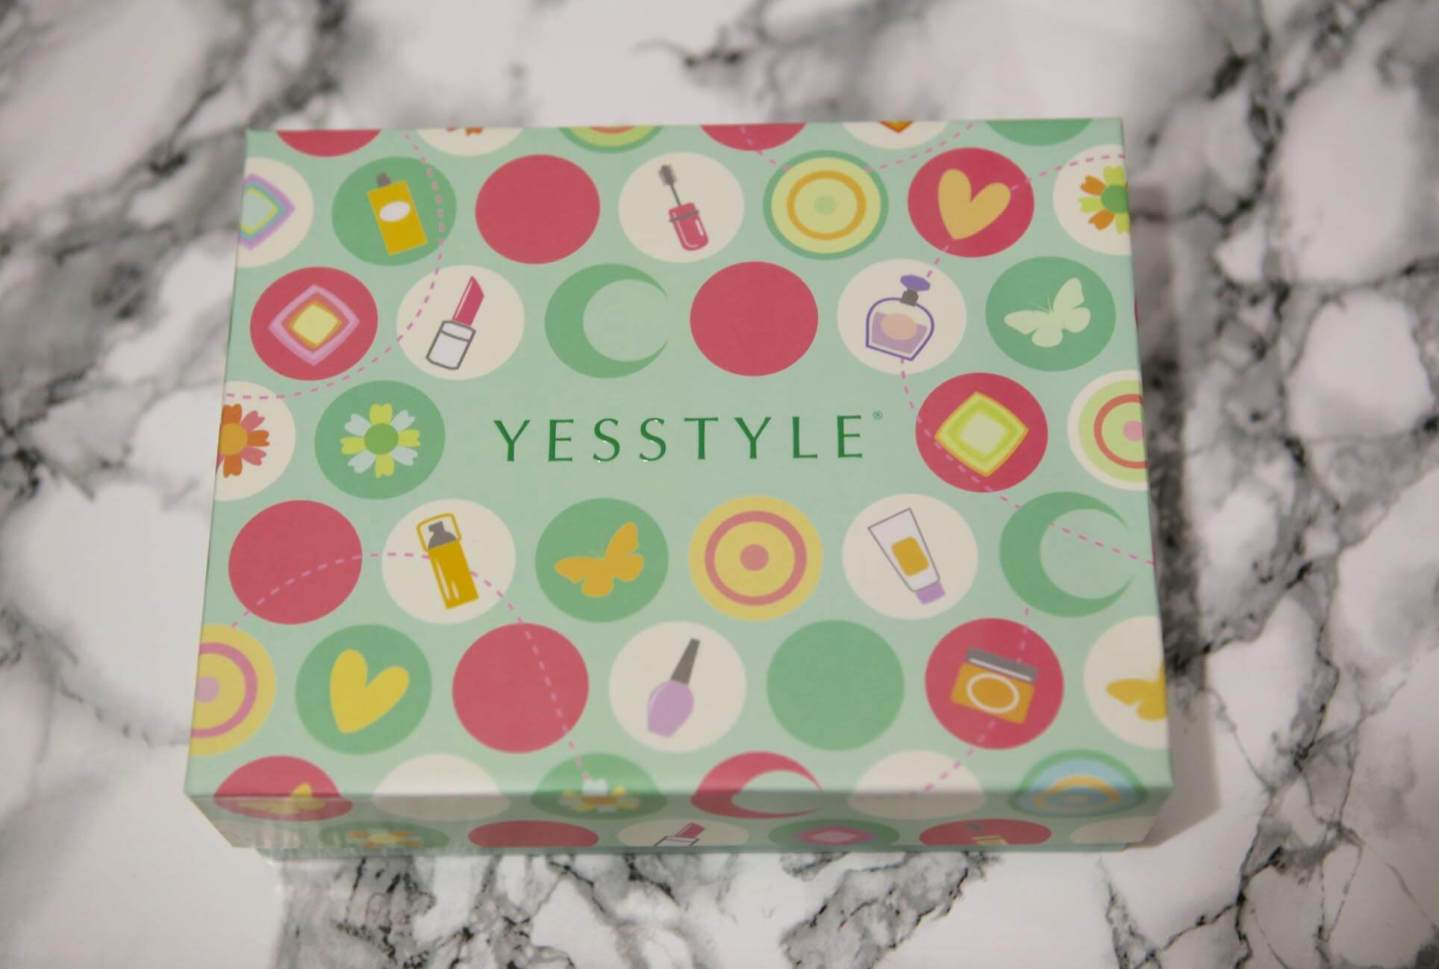 Trying Out Korean Beauty With Yesstyle